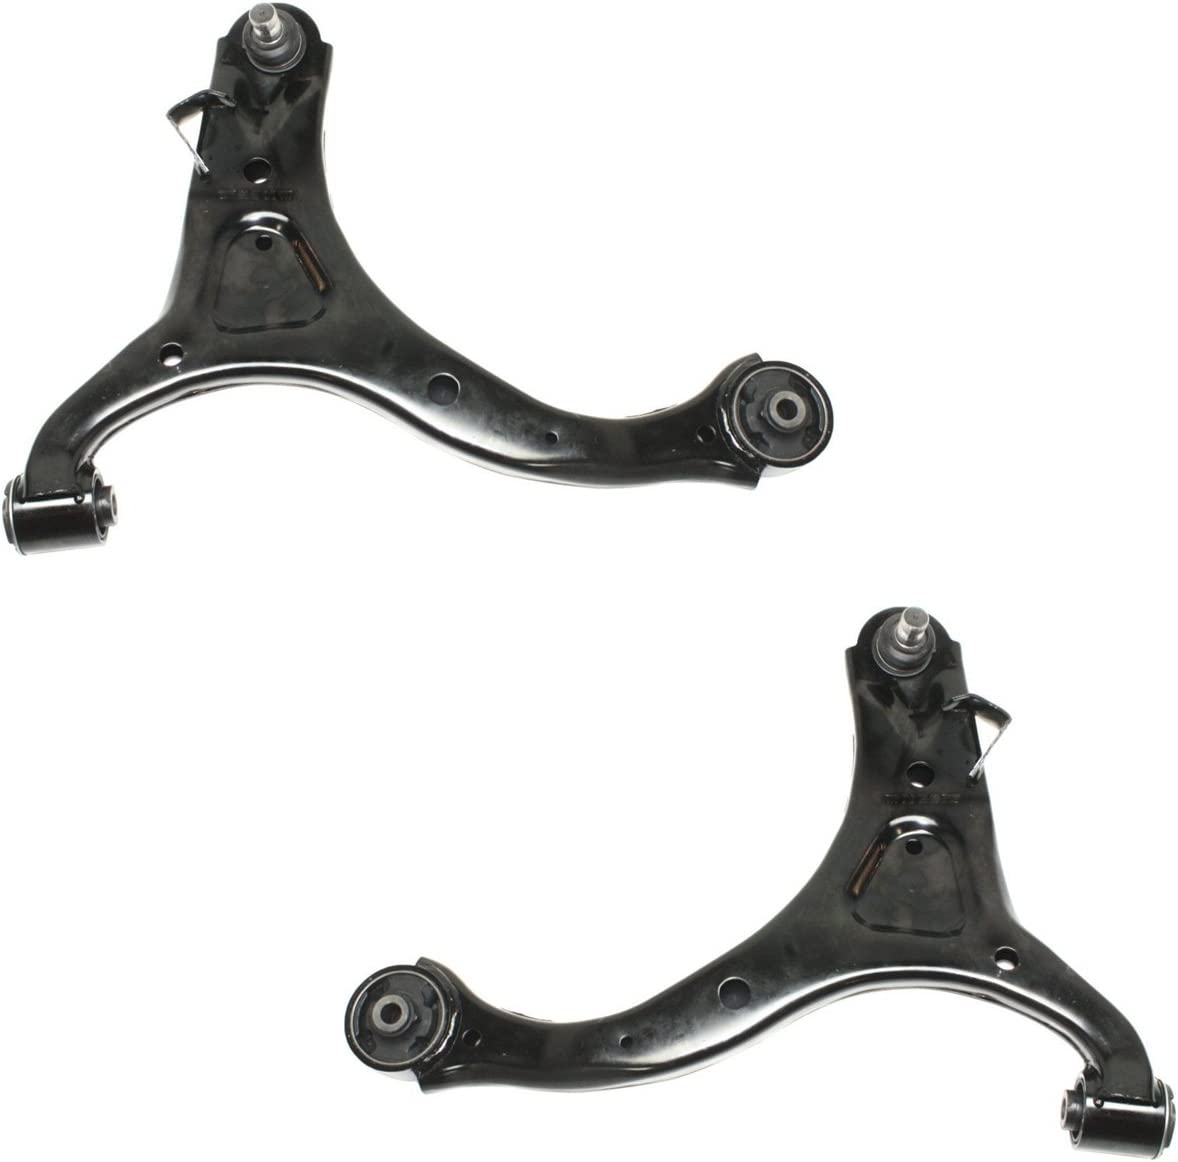 2007 Fits Hyundai Santa Fe Front Left Lower Suspension Control Arm and Ball Joint Assembly With Five Years Warranty